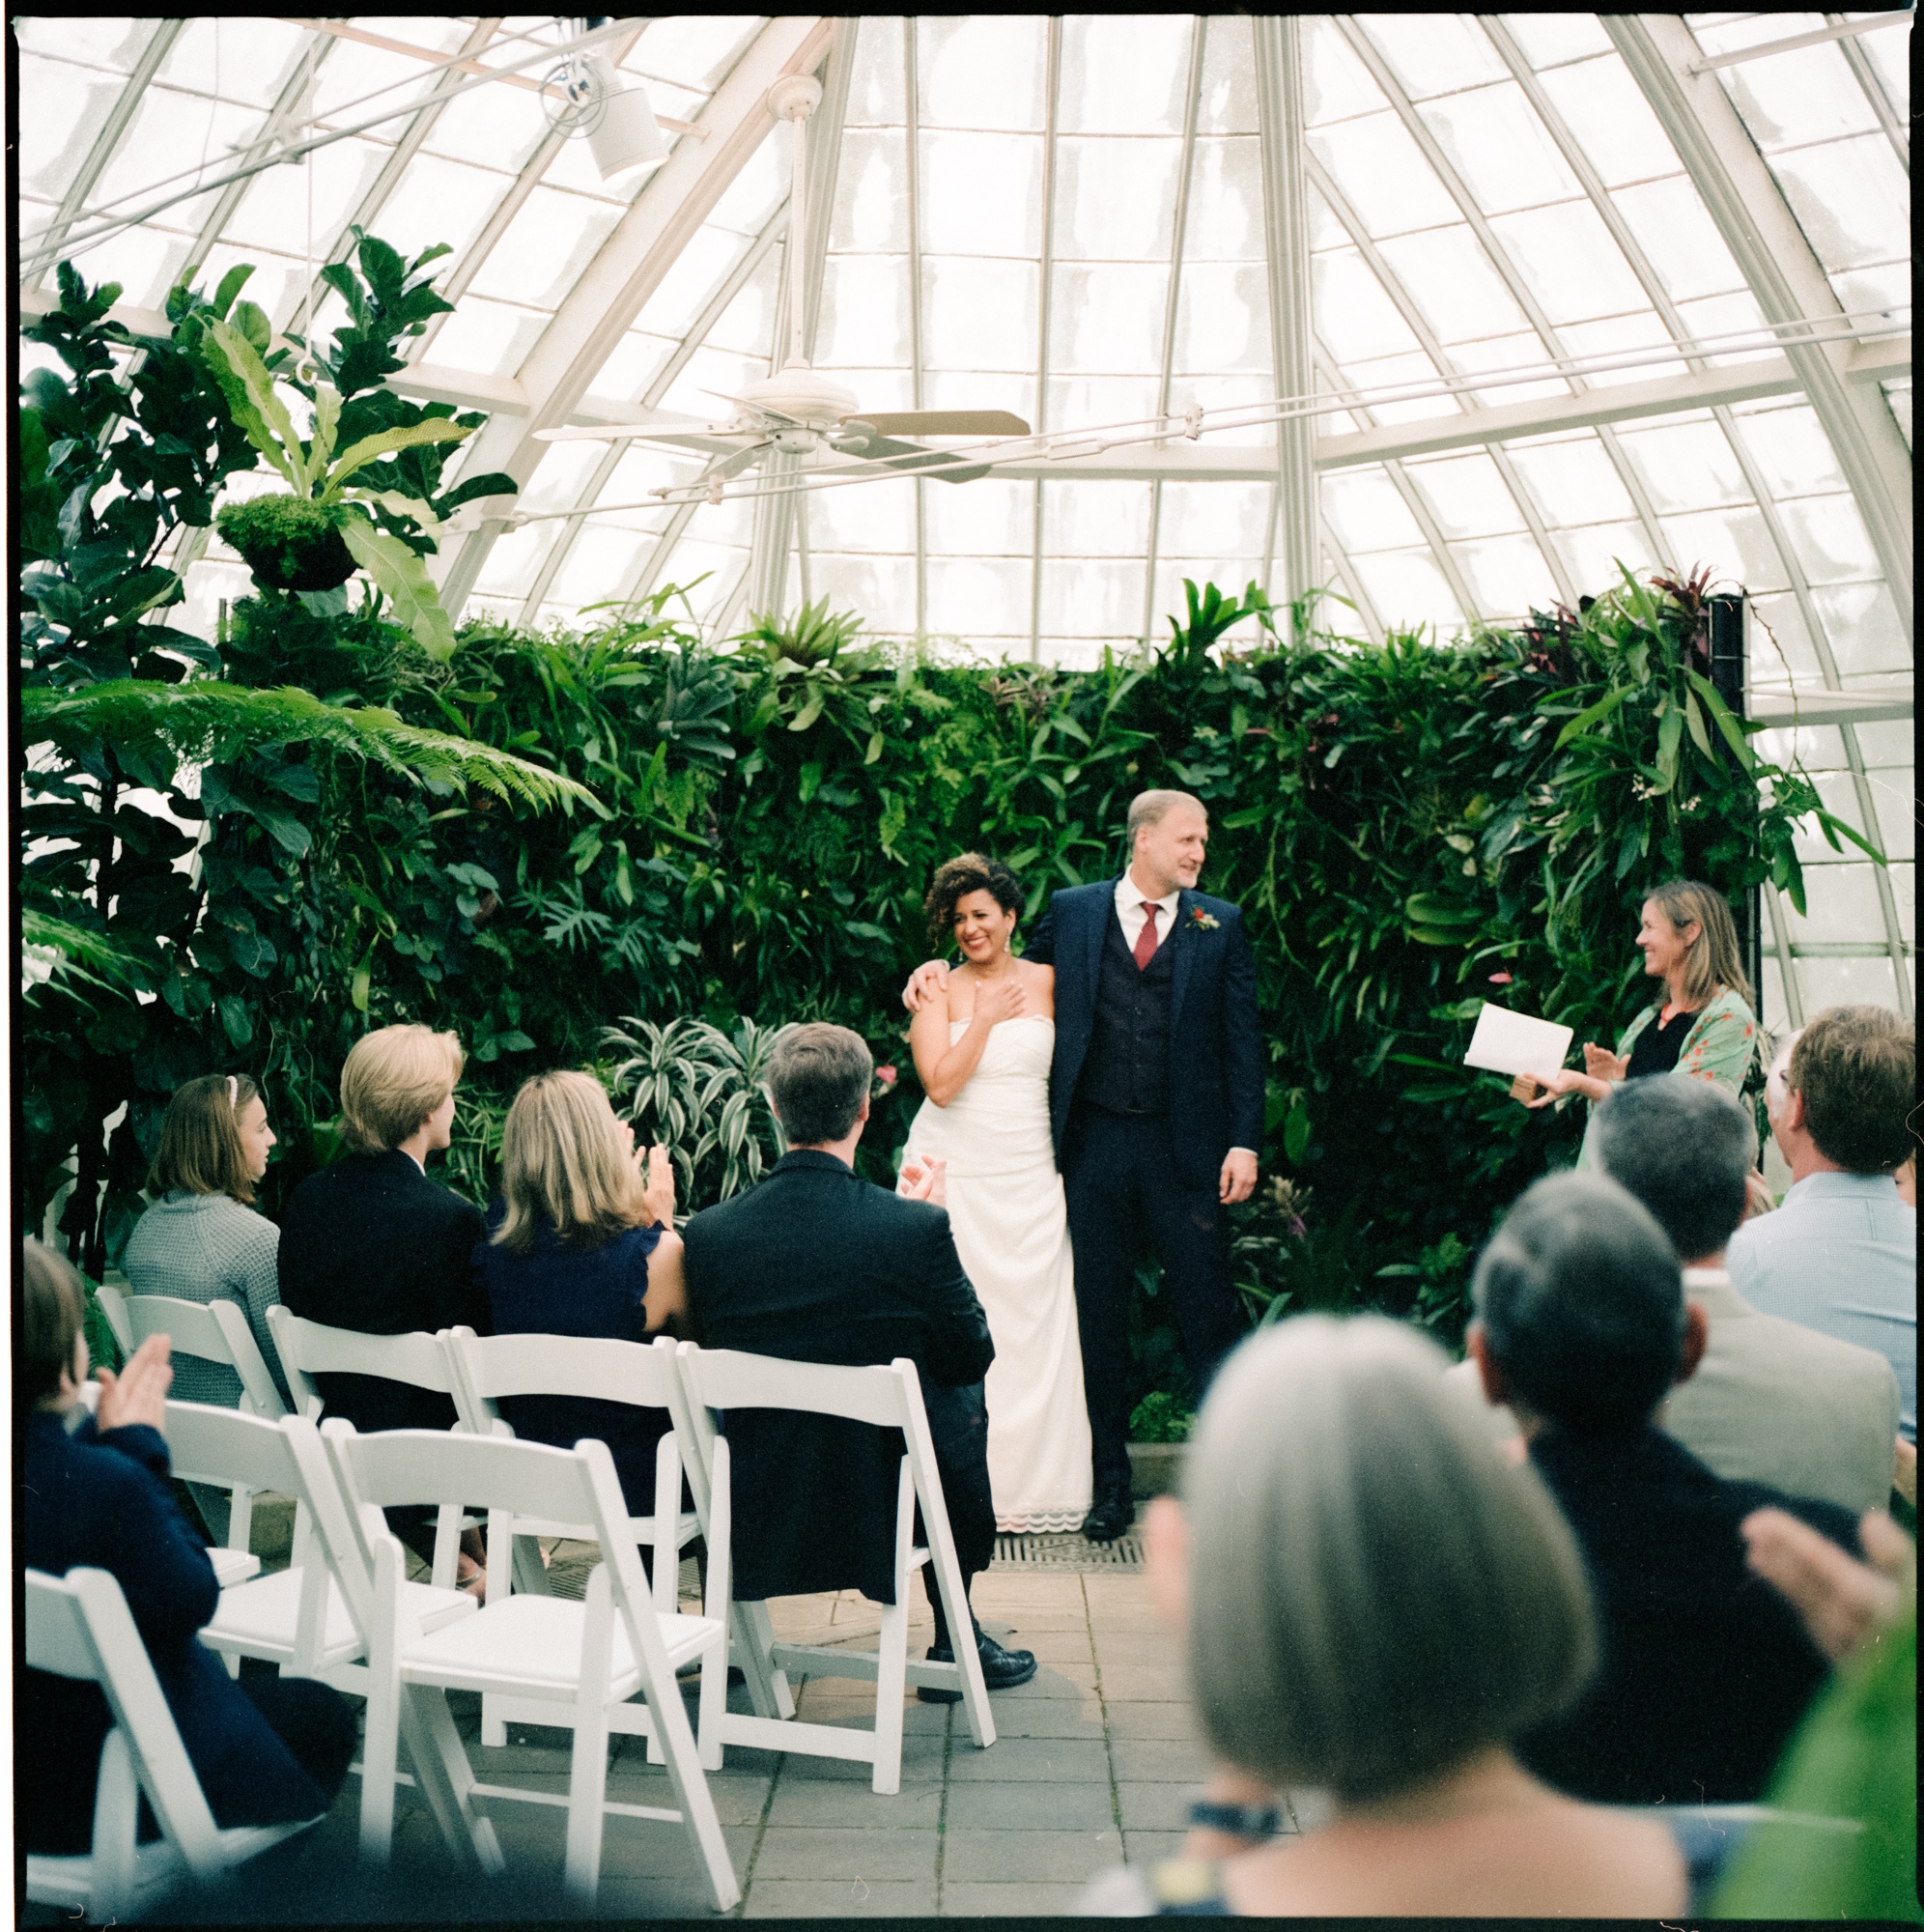 Conservatory_of_Flowers_San_Francisco_Wedding_032.jpg